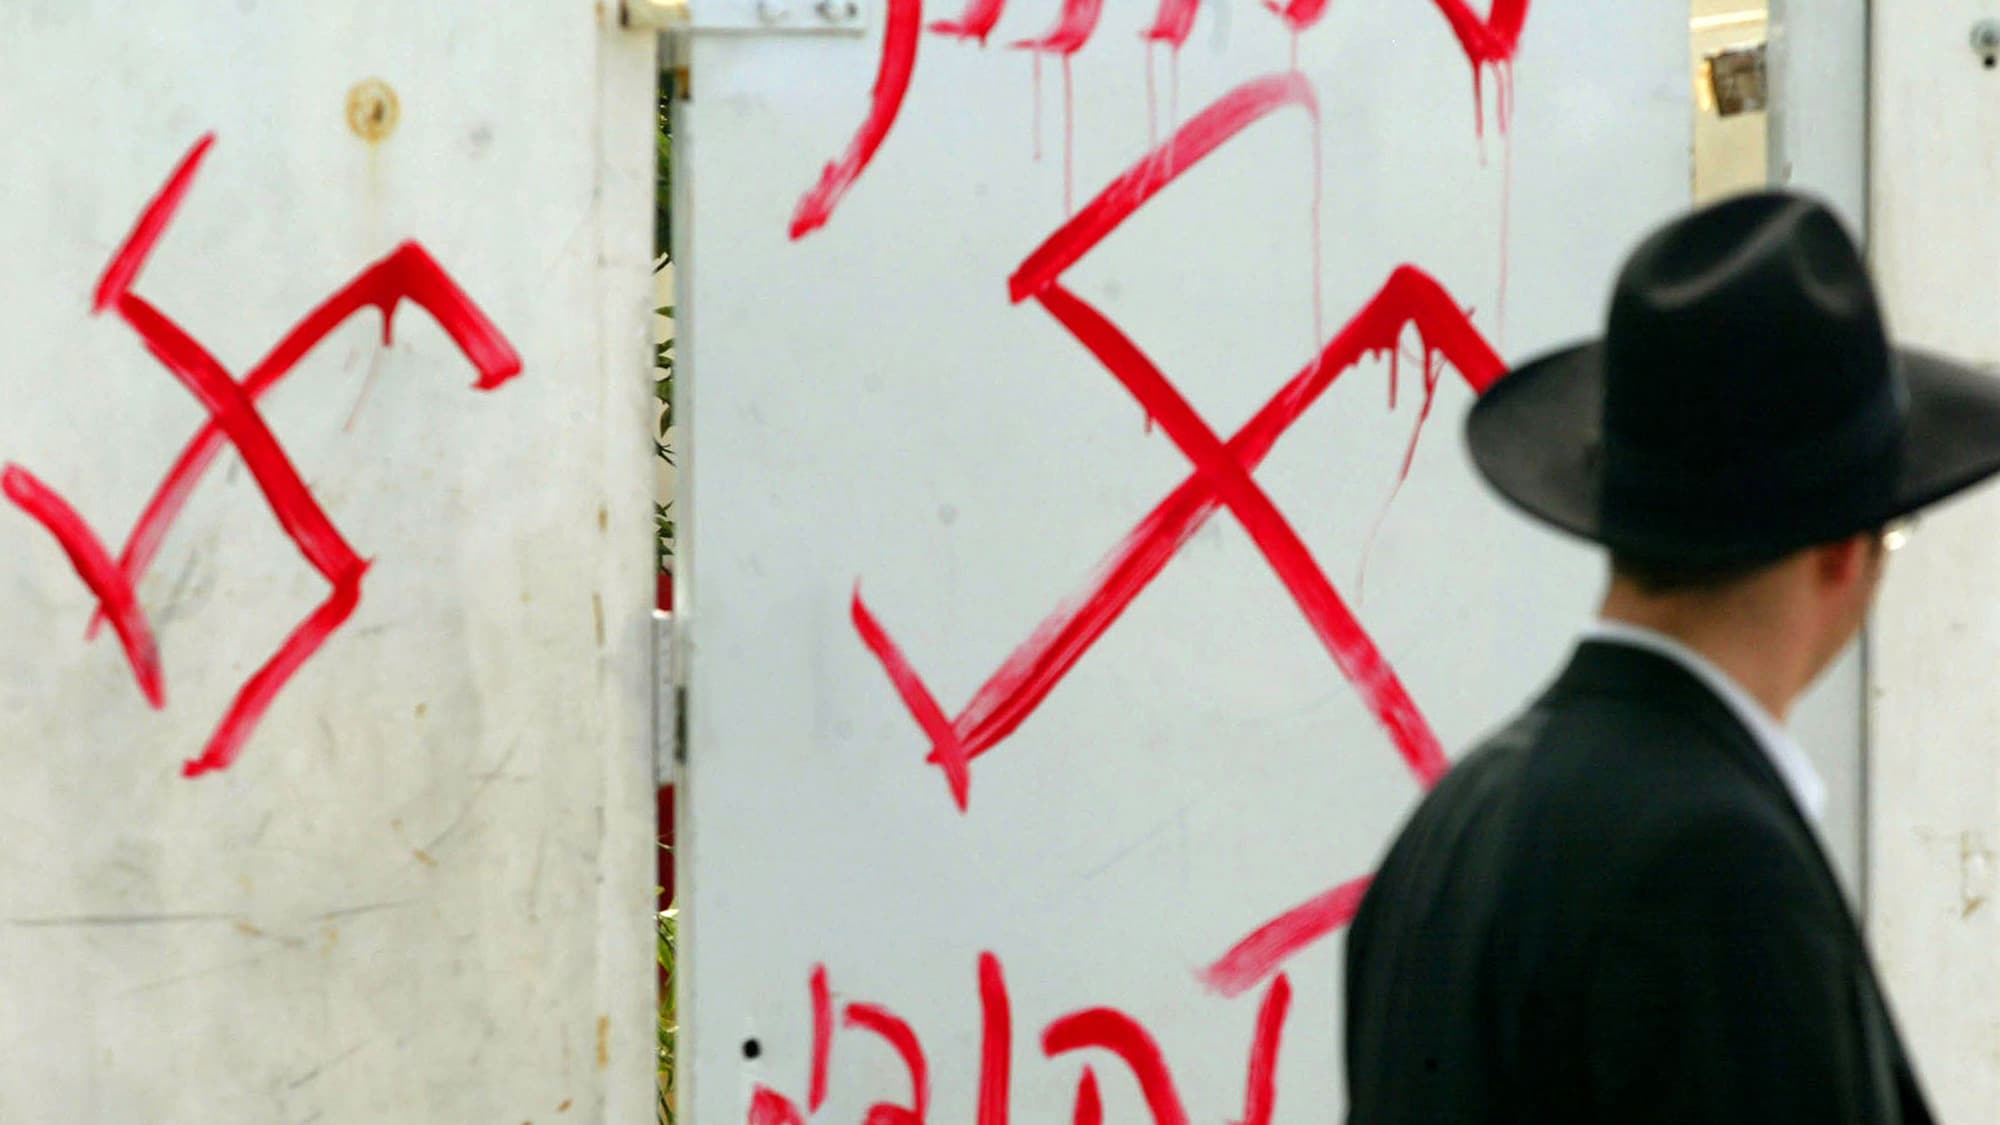 PETAH TIKVA, ISRAEL - MARCH 5:  (ISRAEL OUT)  A Jewish man looks at anti-semitic graffiti which was sprayed on the gate of a